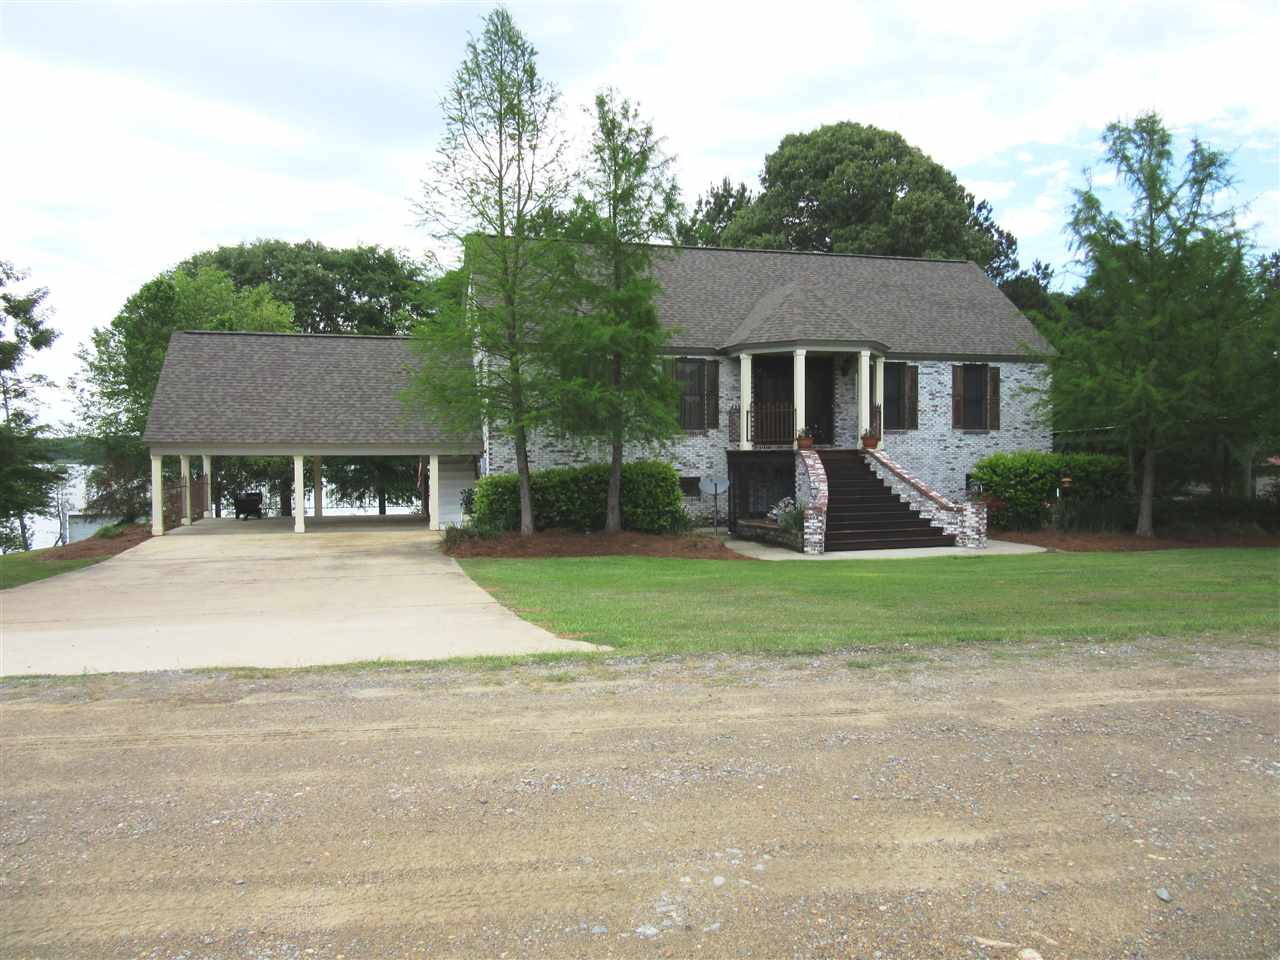 135 LITTLE HAPPY TRAILS, Jonesboro, LA 71251